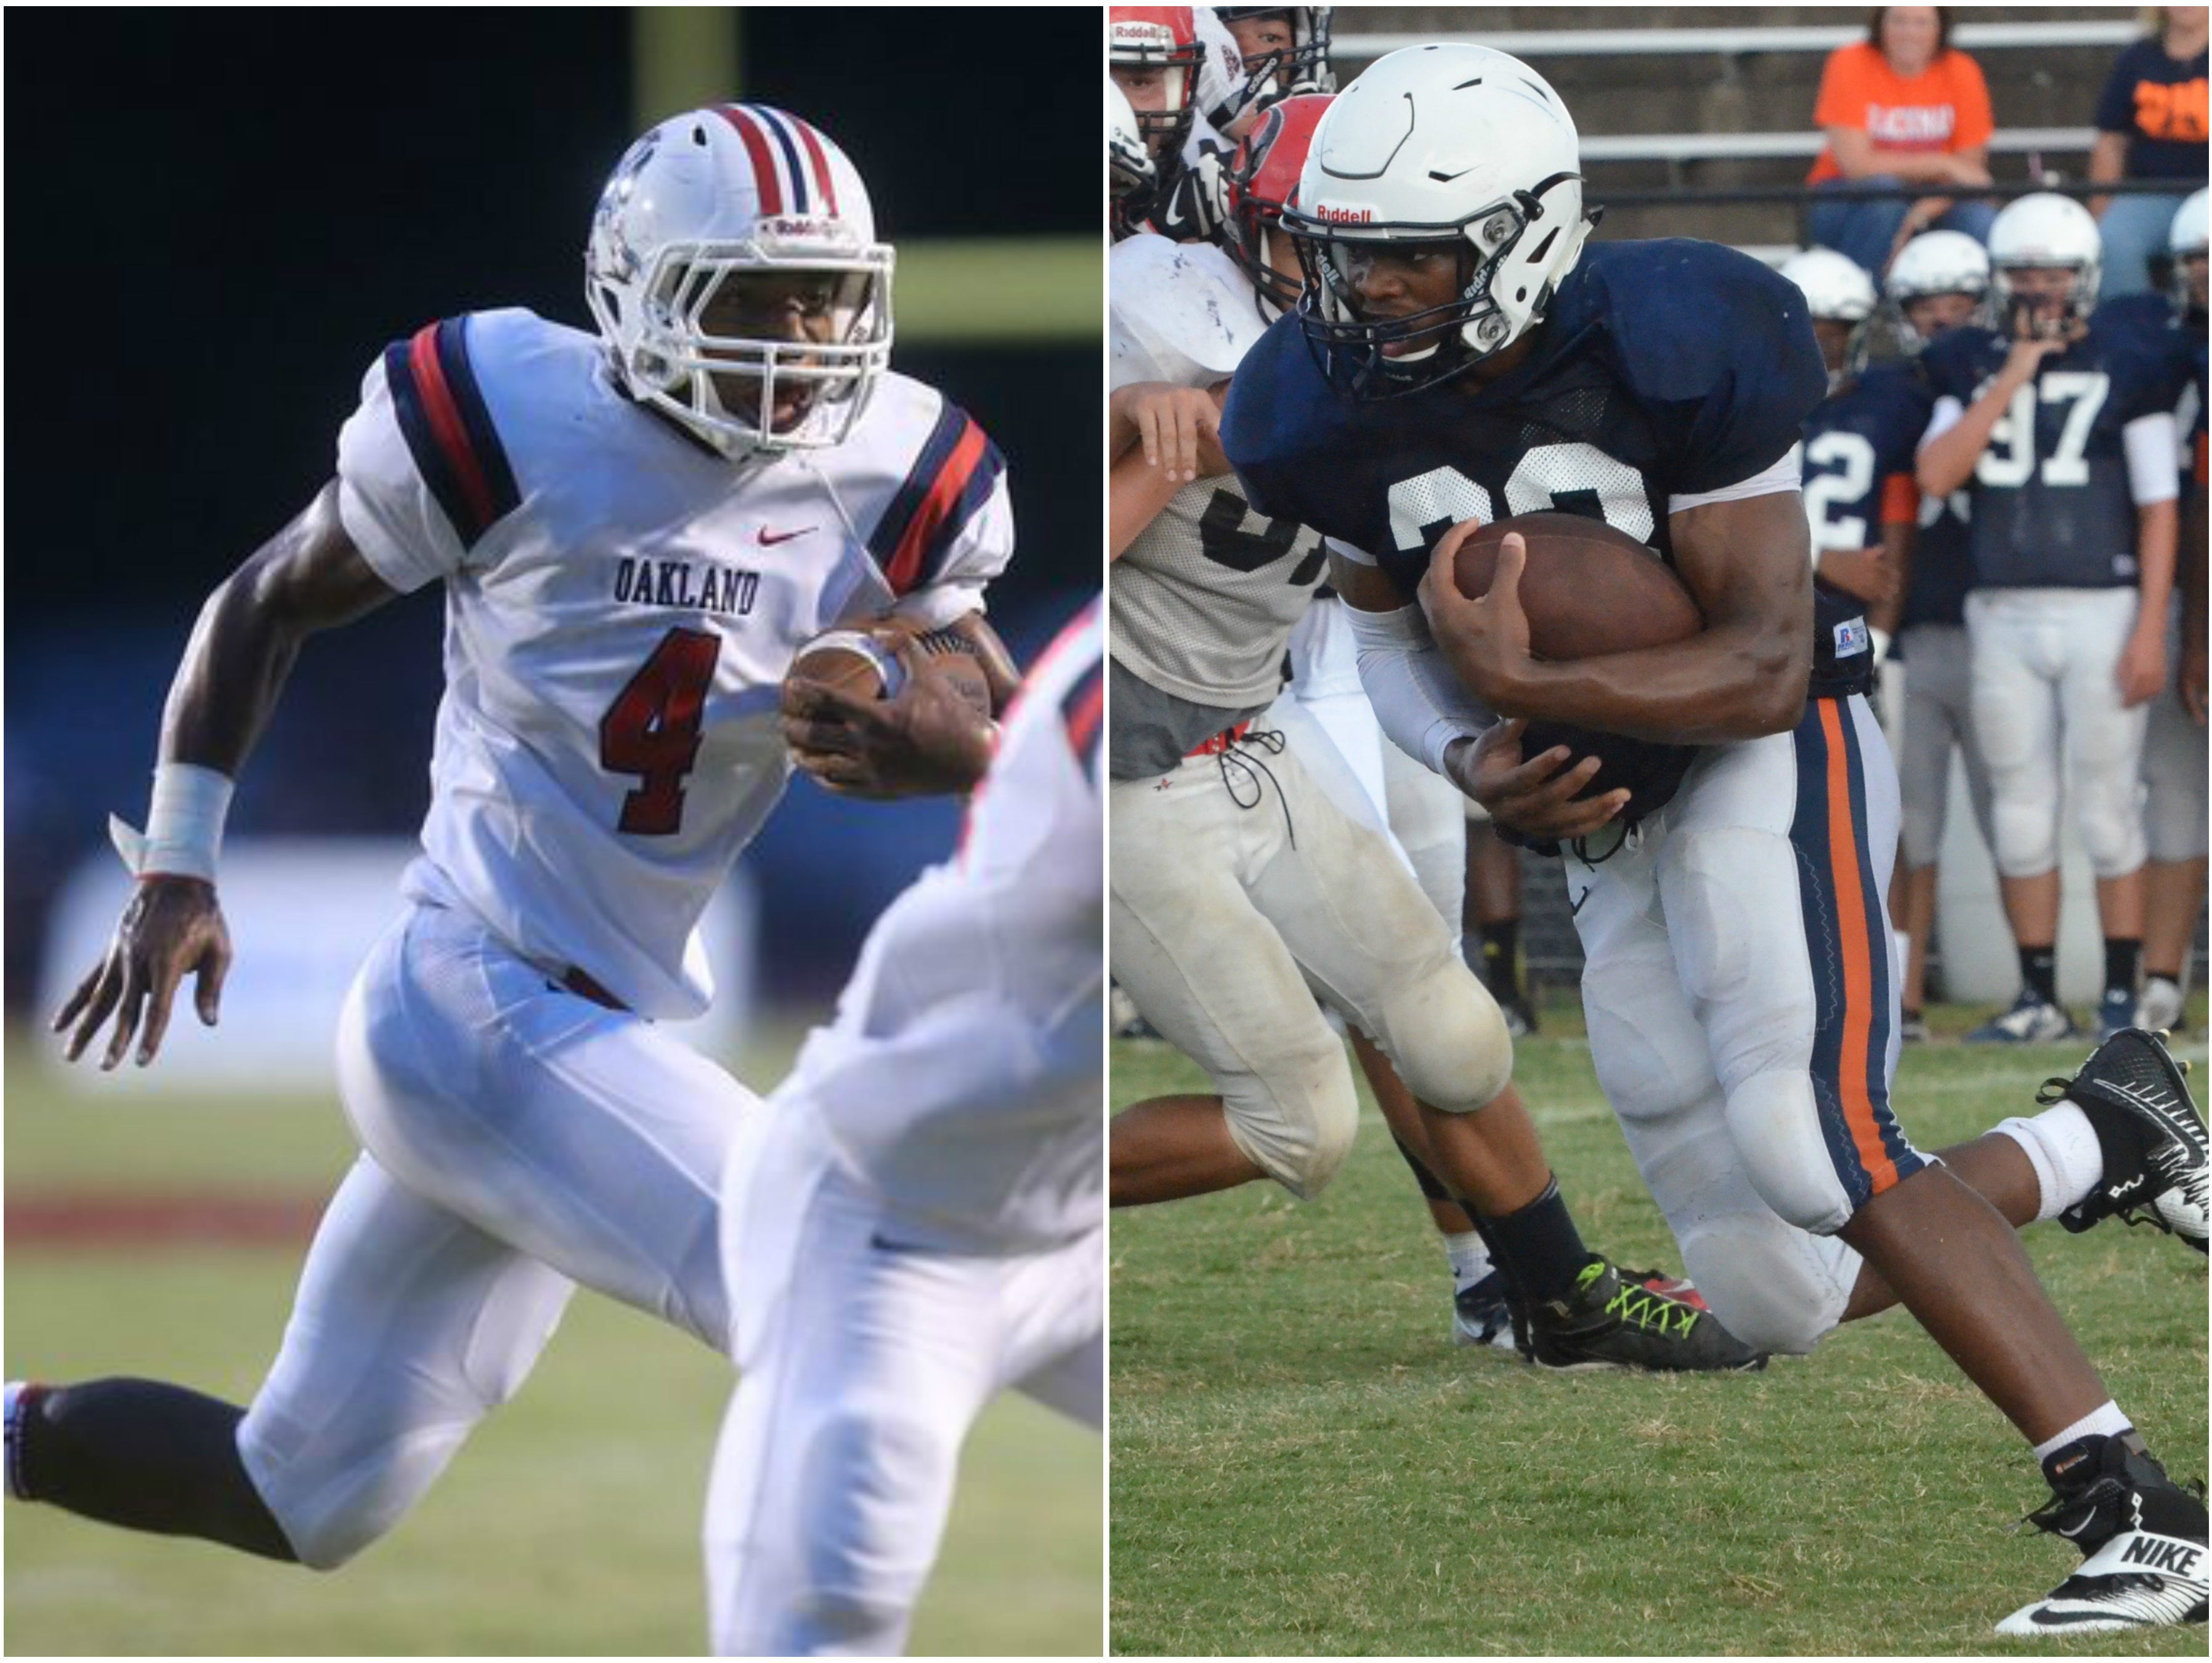 Oakland running back Lazarius Patterson (left) and Blackman running back Master Teague (right).